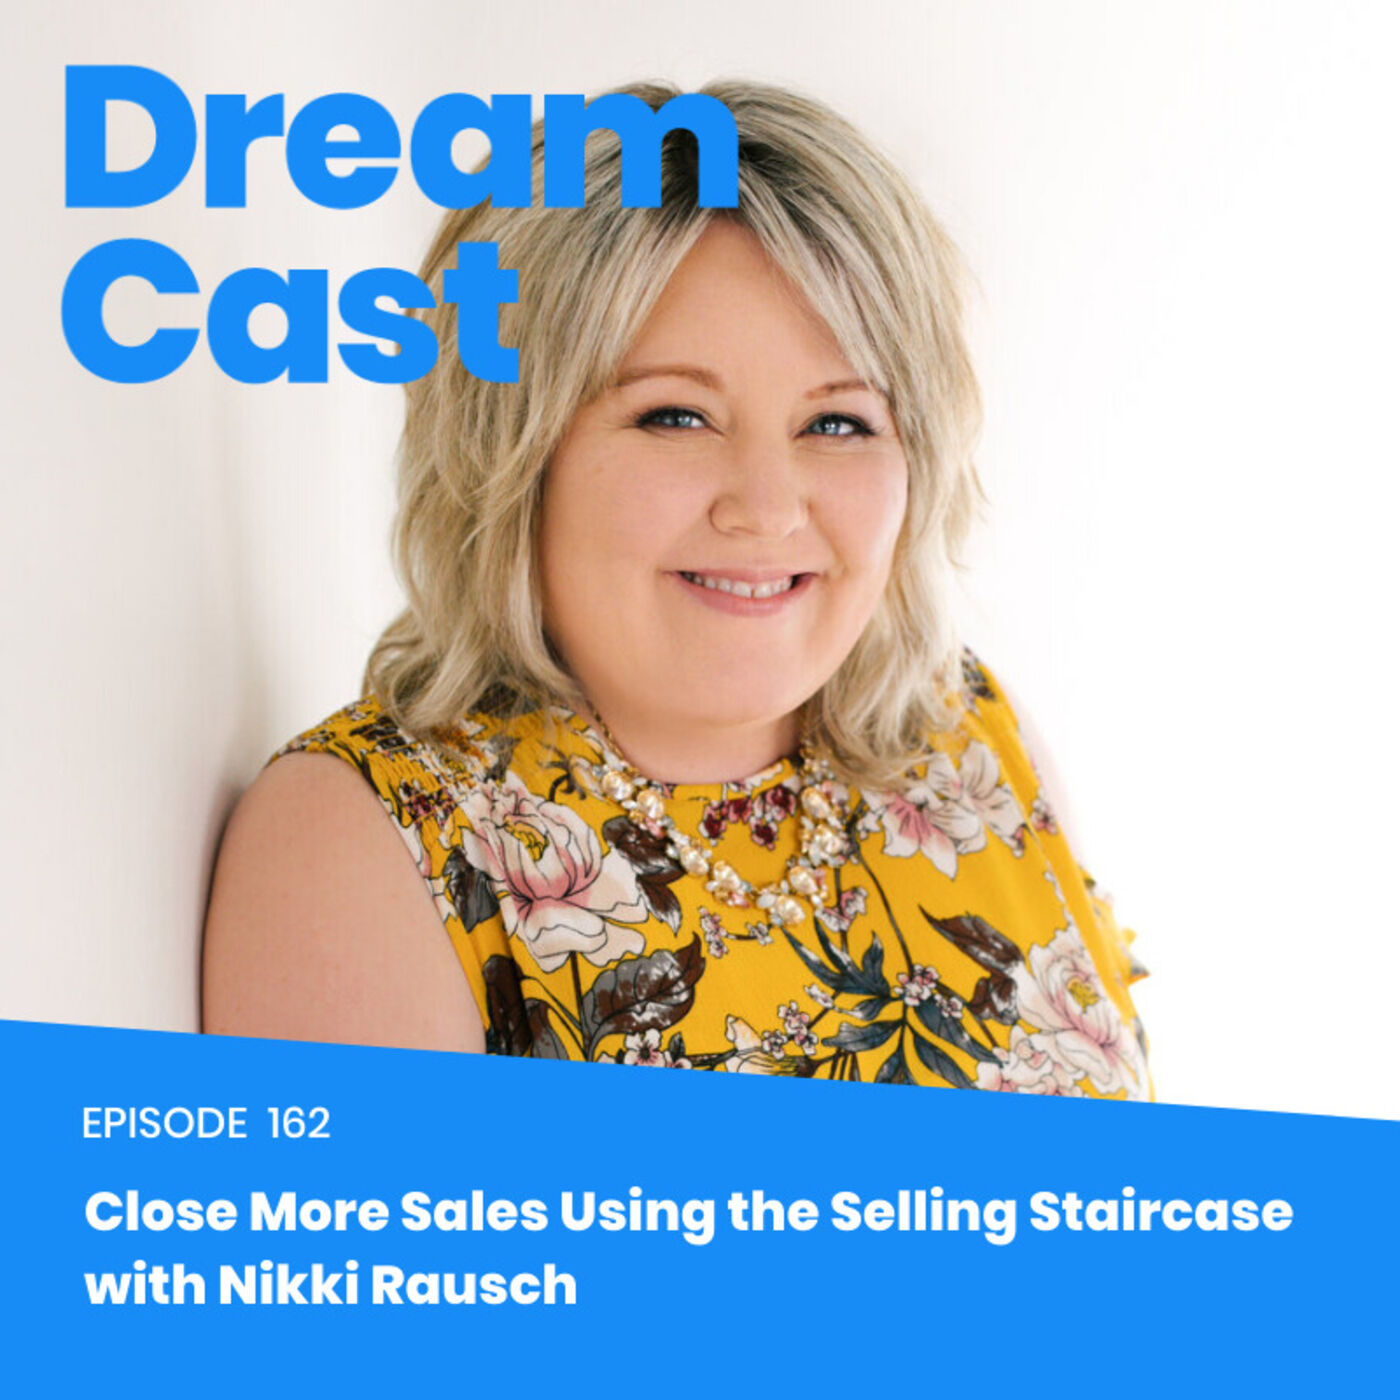 Episode 162 – Close More Sales Using the Selling Staircase with Nikki Rausch